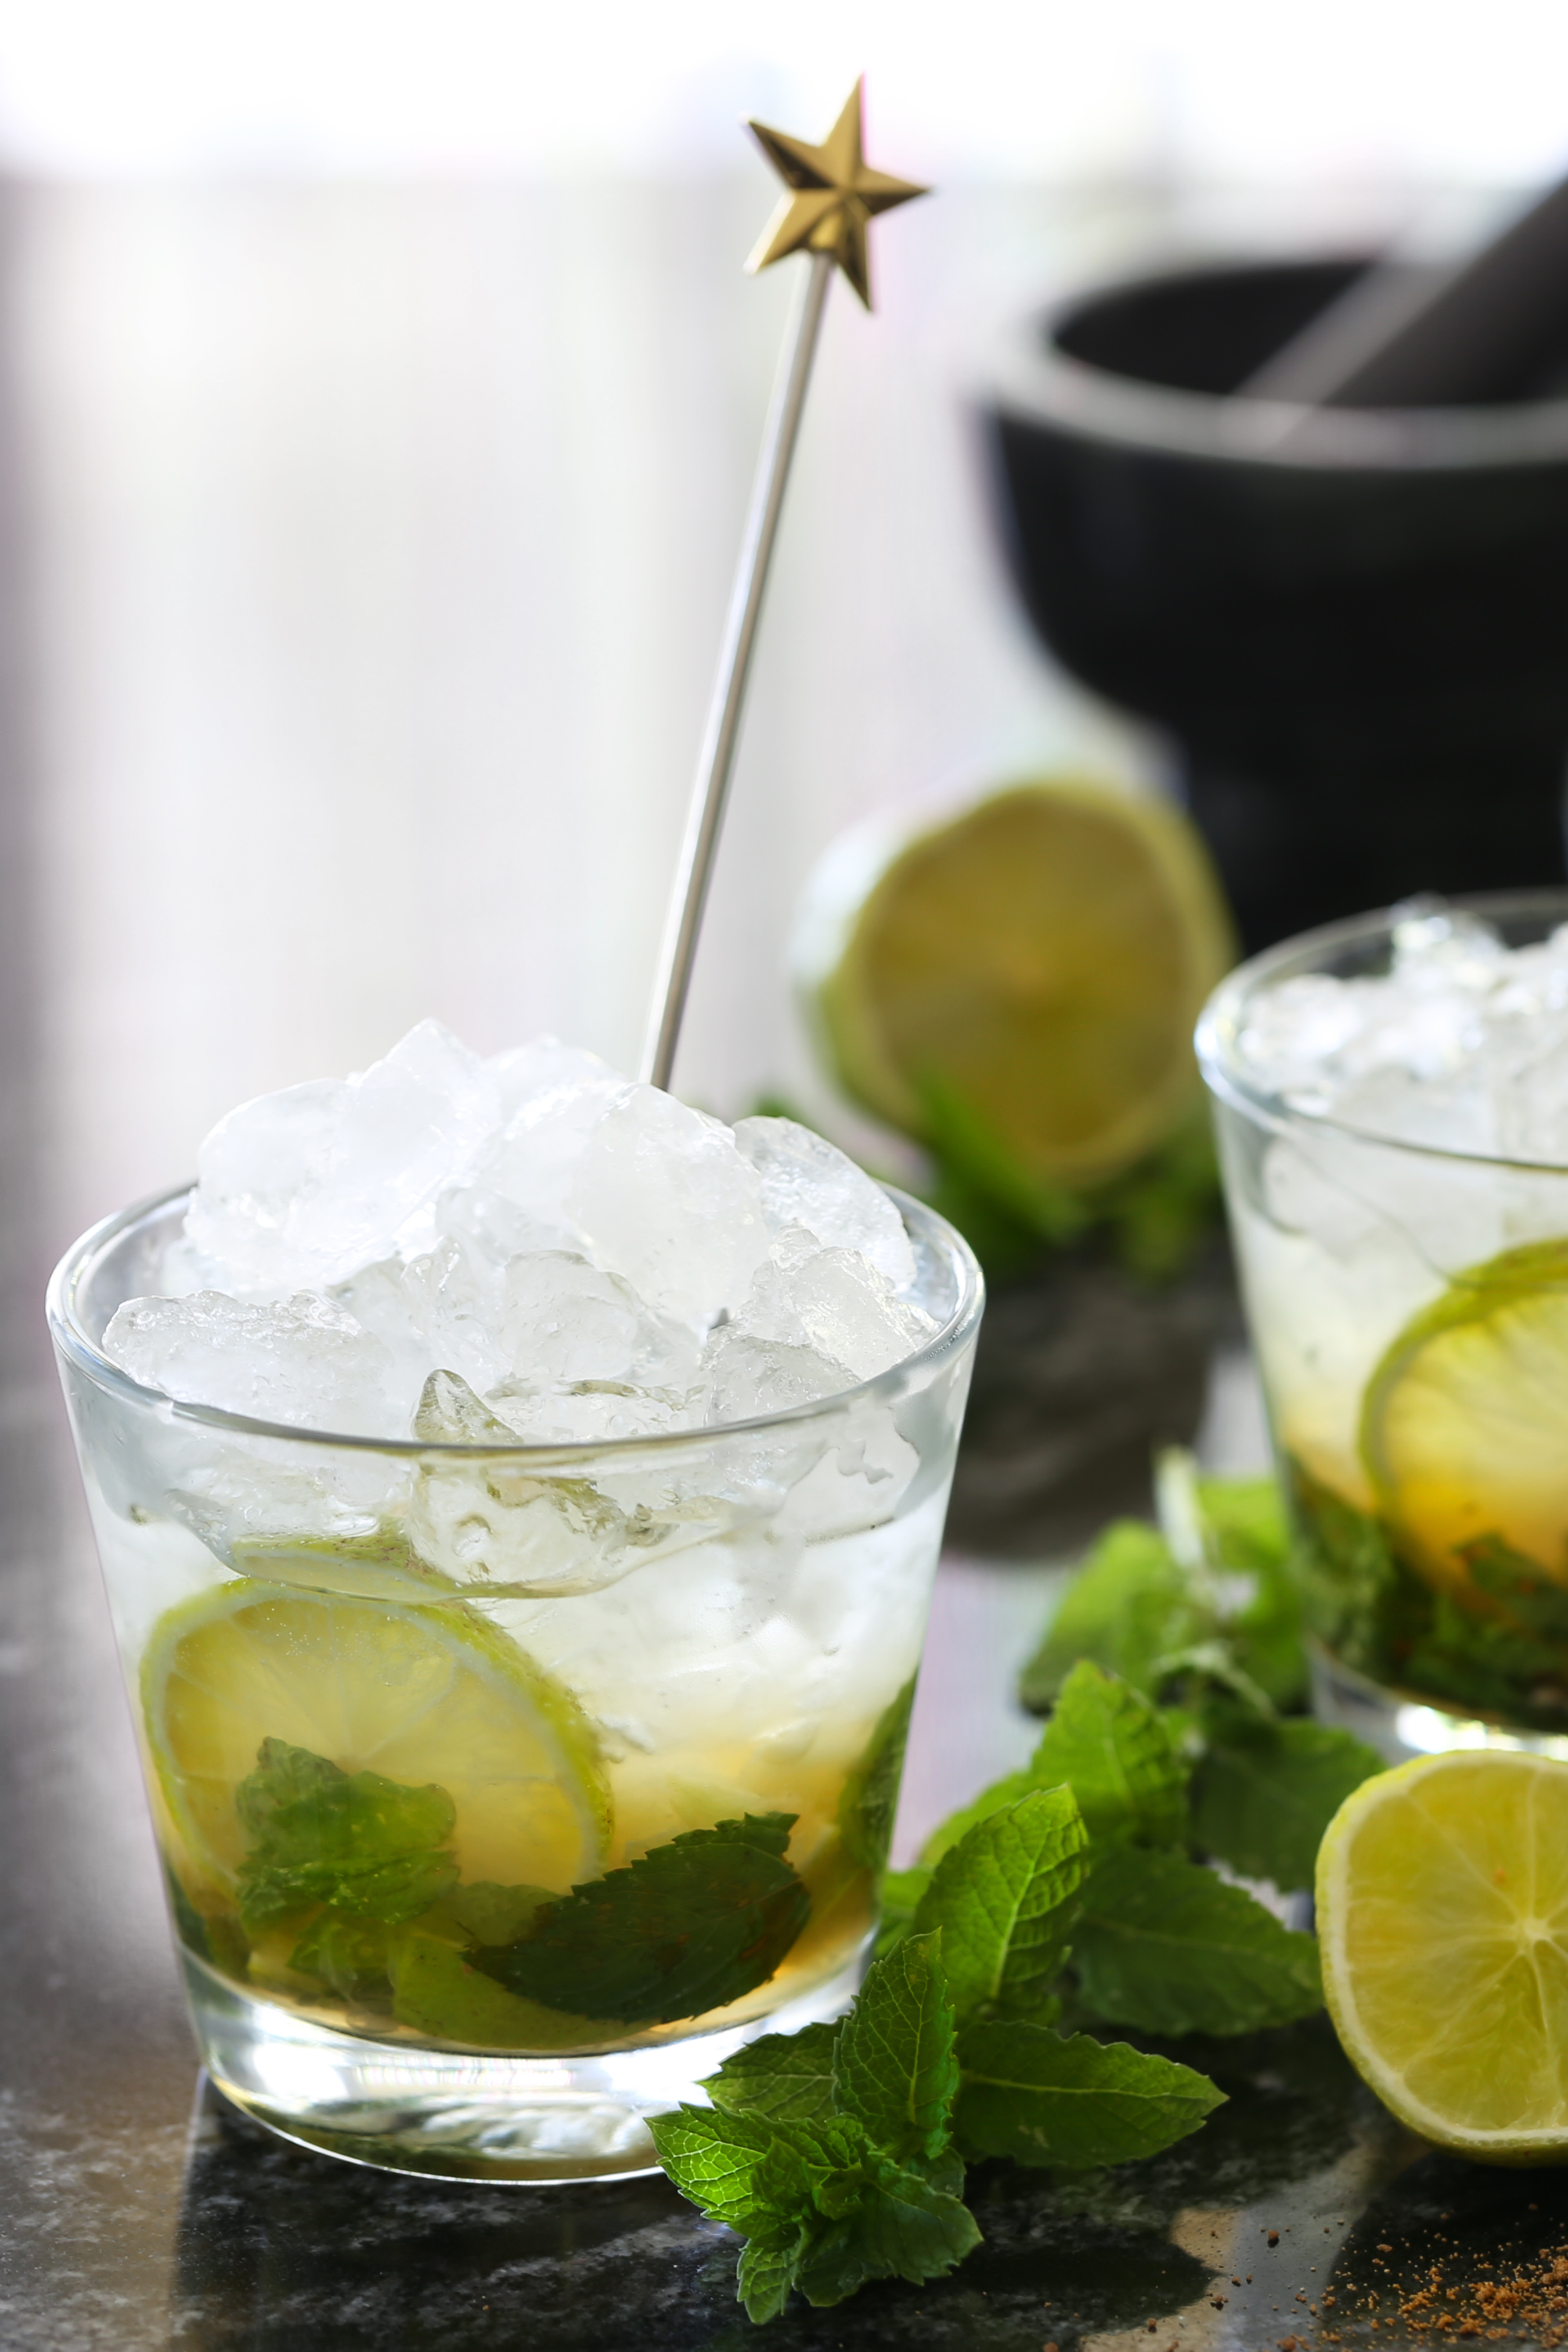 Recette de base du traditionnel Mojito - boisson nationale cubaine - delimoon.com